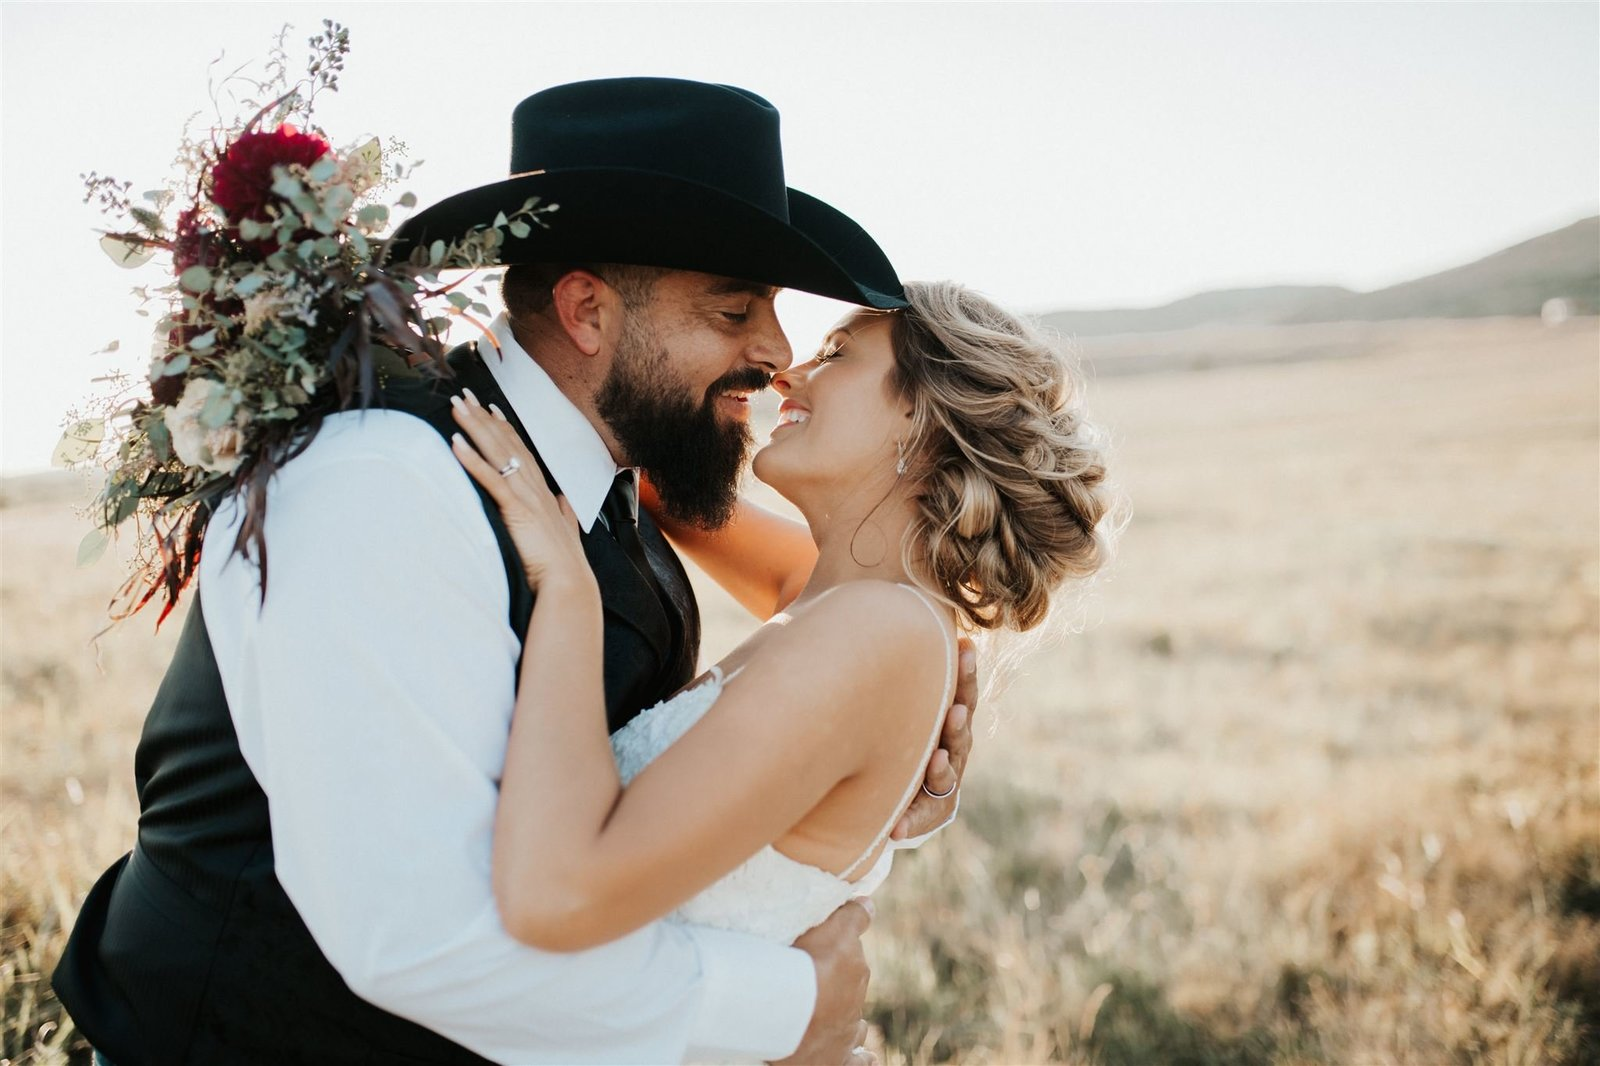 Bride and groom at their intimate Oklahoma elopement.